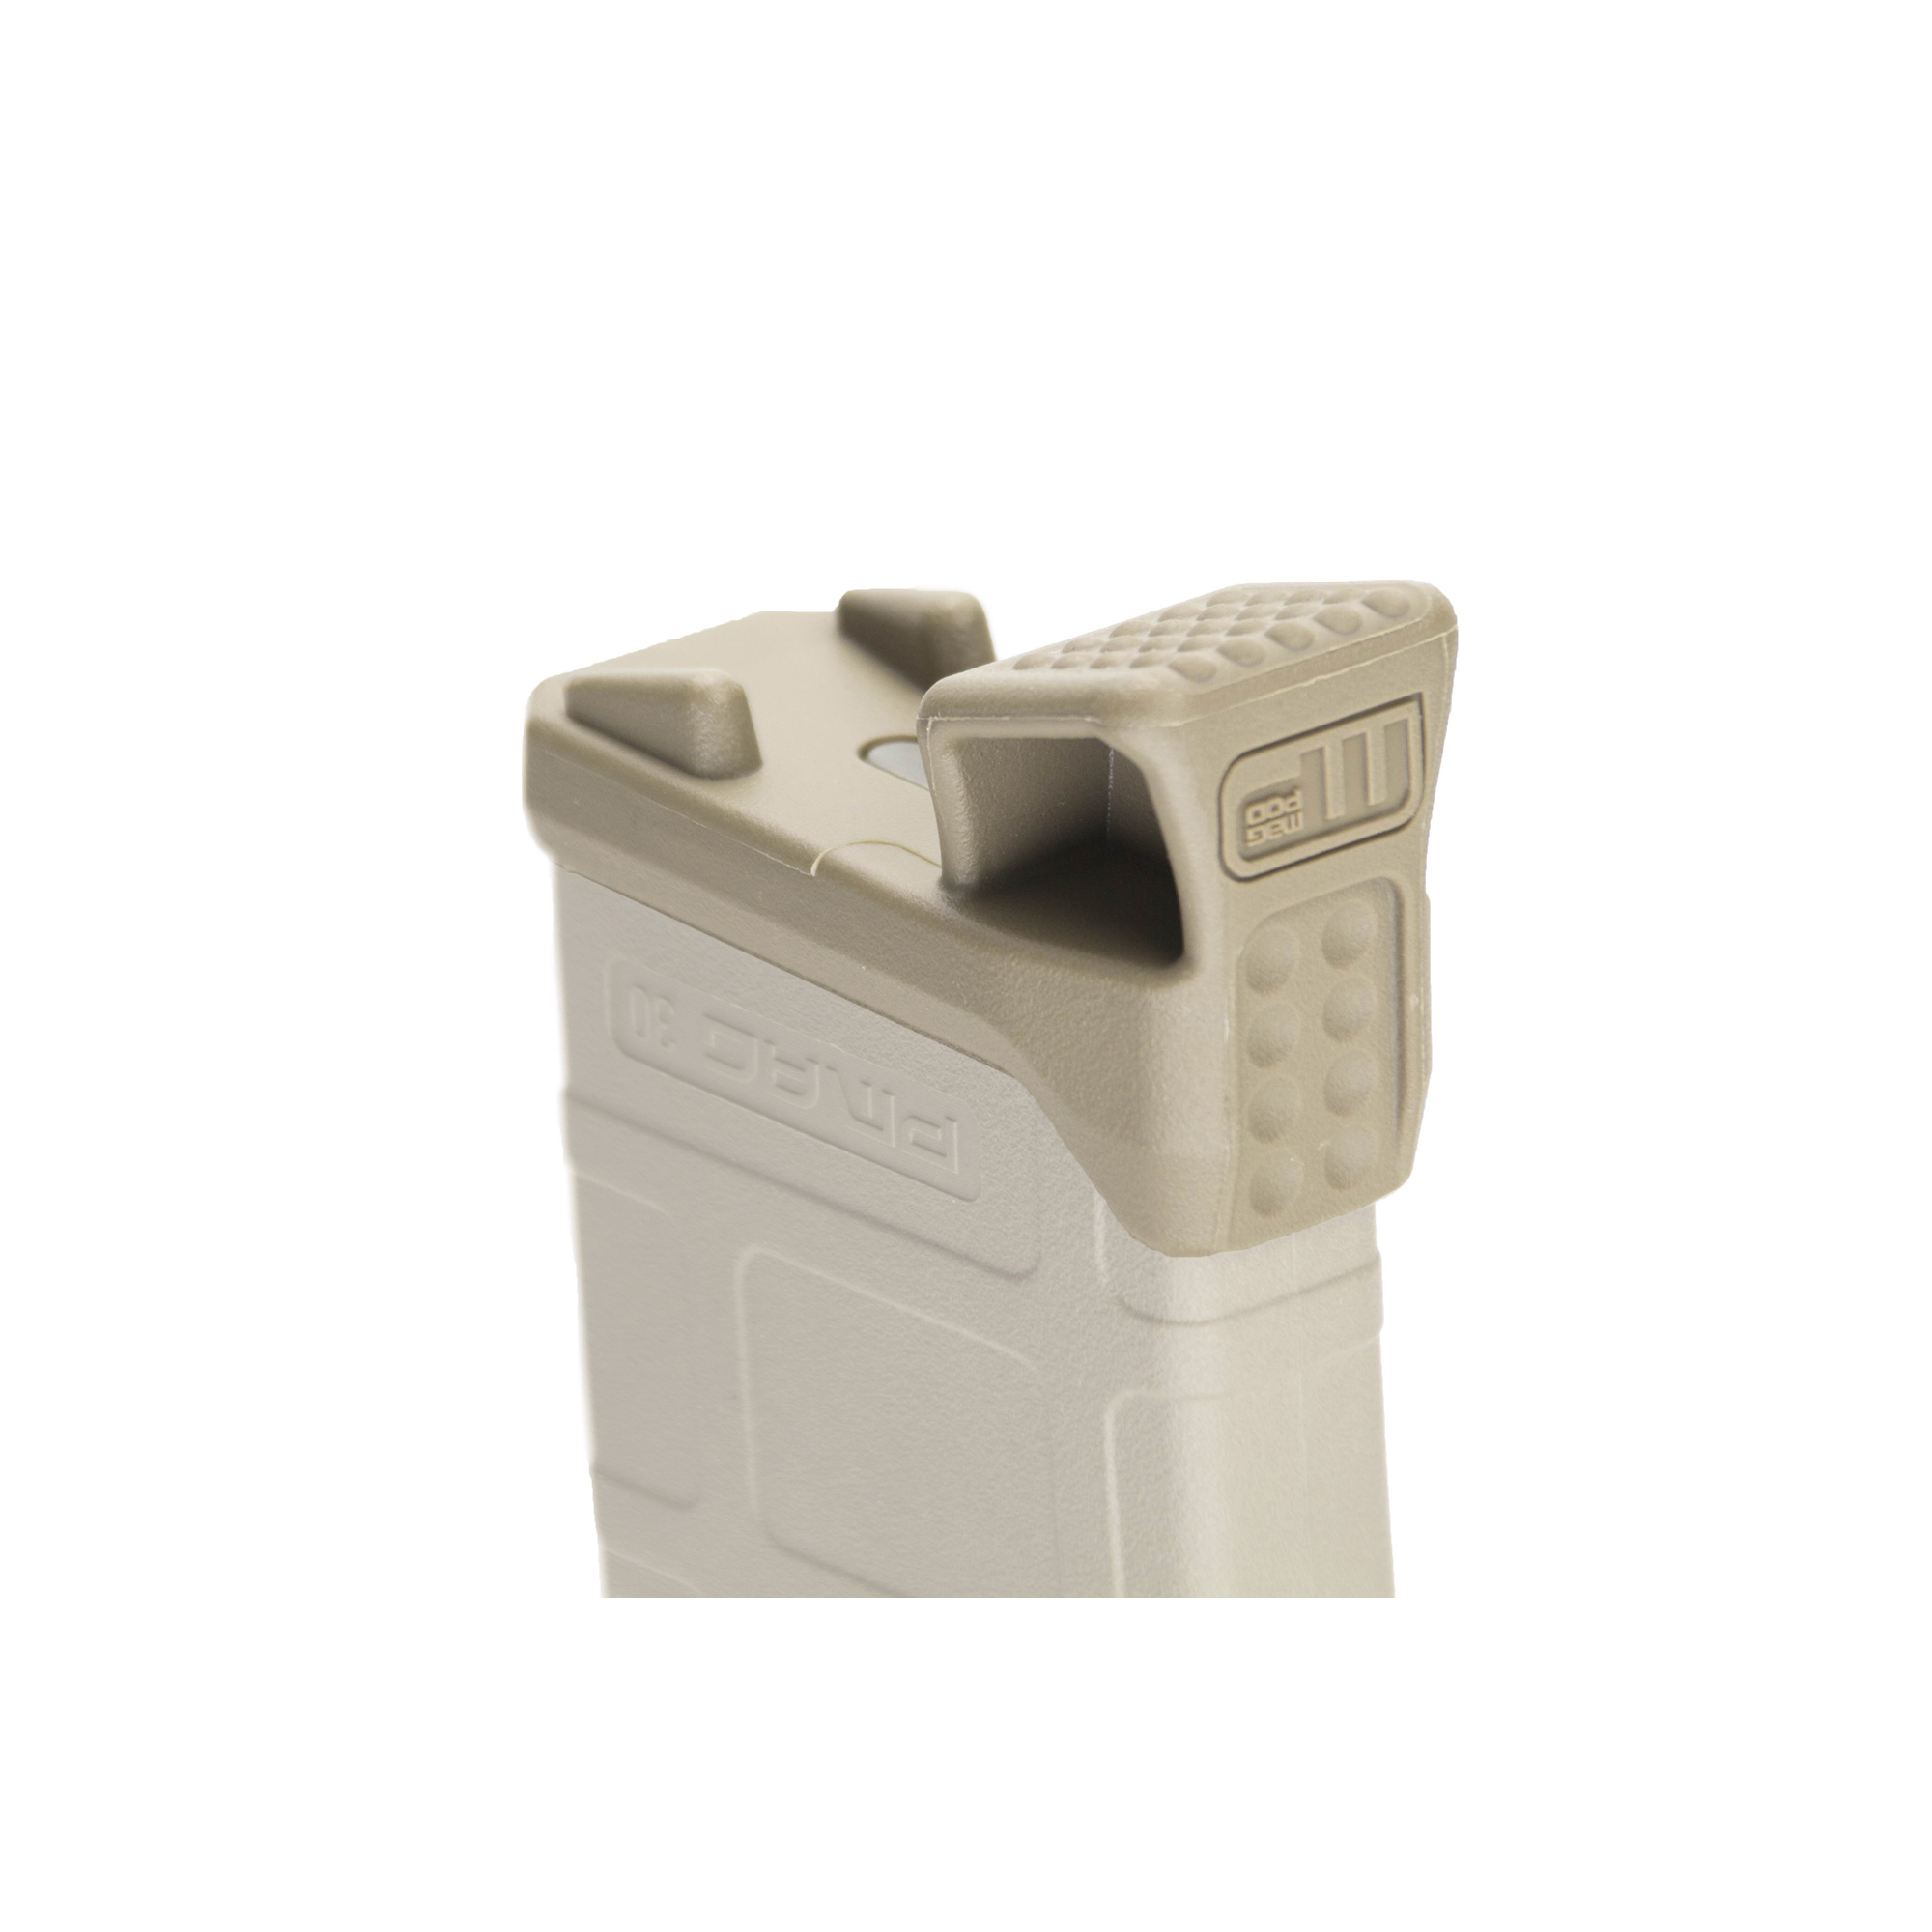 The MagPod fits Gen2 Pmag's (or older) and has an injection molded TPU base pad for enhanced traction on hard surfaces.